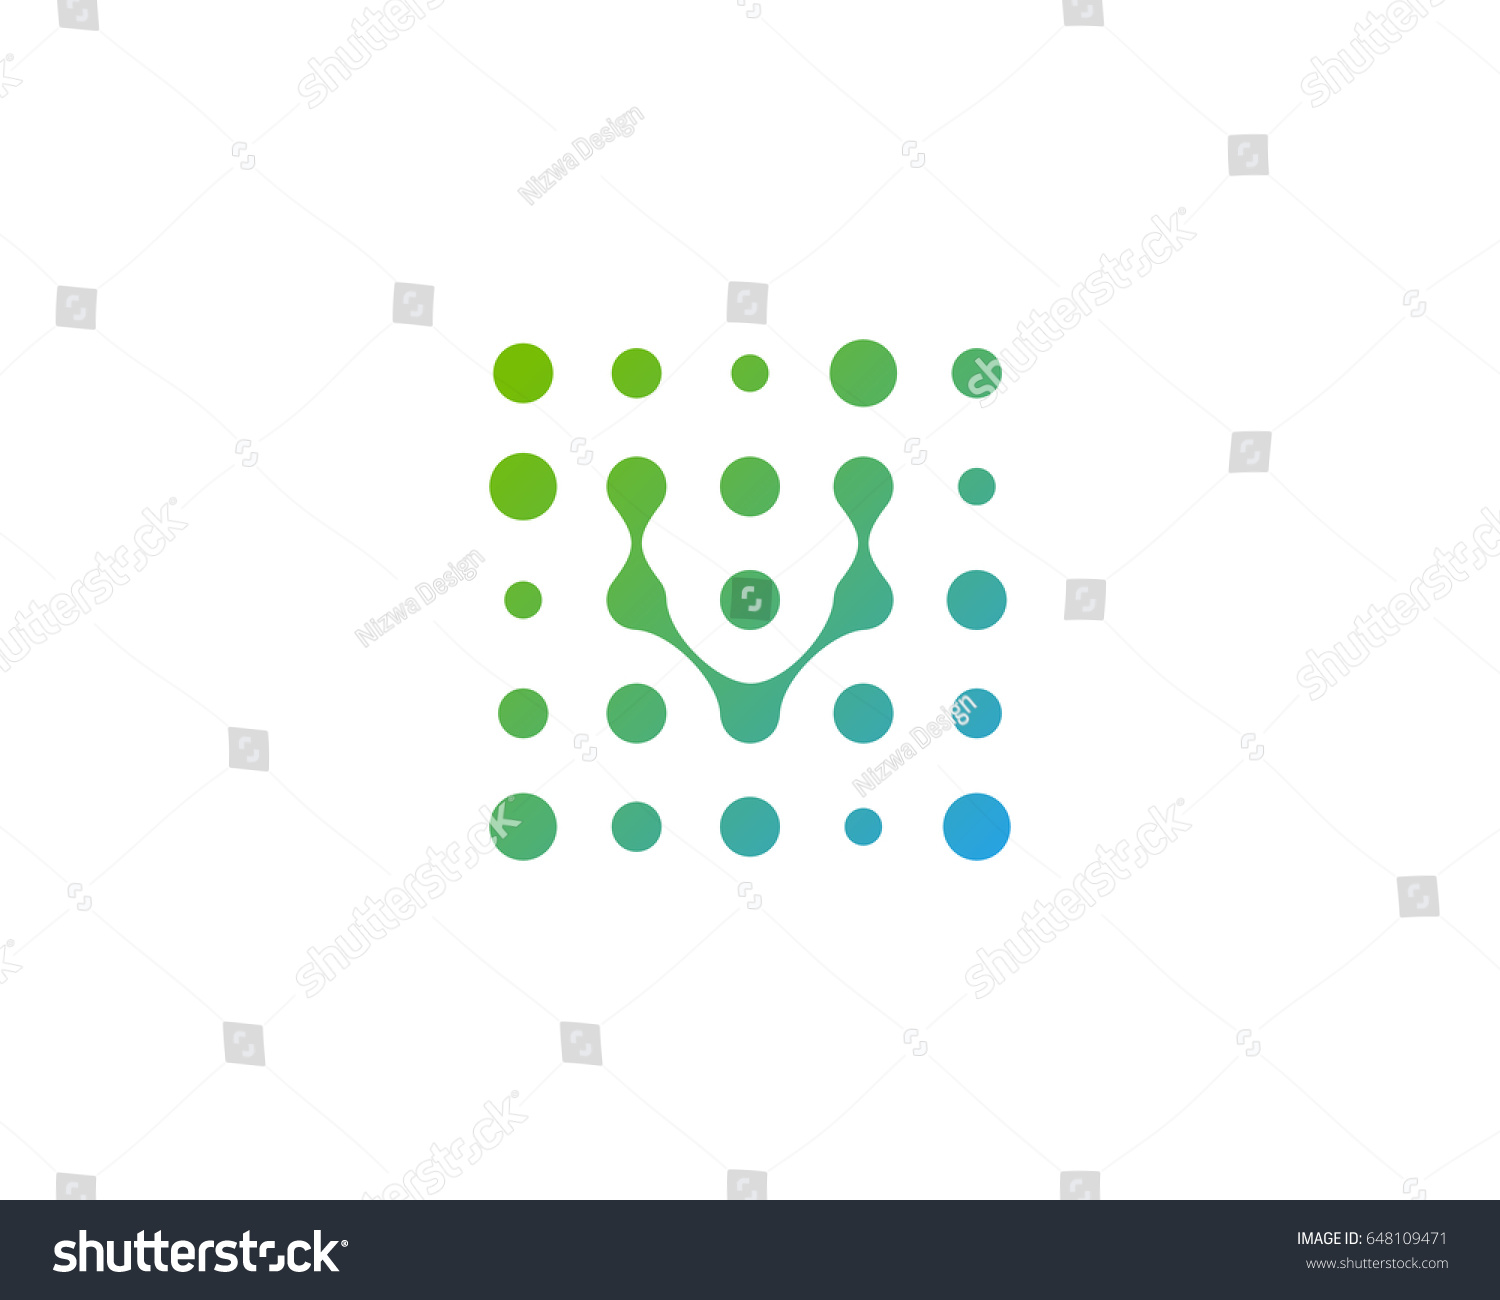 Dot digital letter v icon logo stock vector 648109471 shutterstock dot digital letter v icon logo design element buycottarizona Image collections